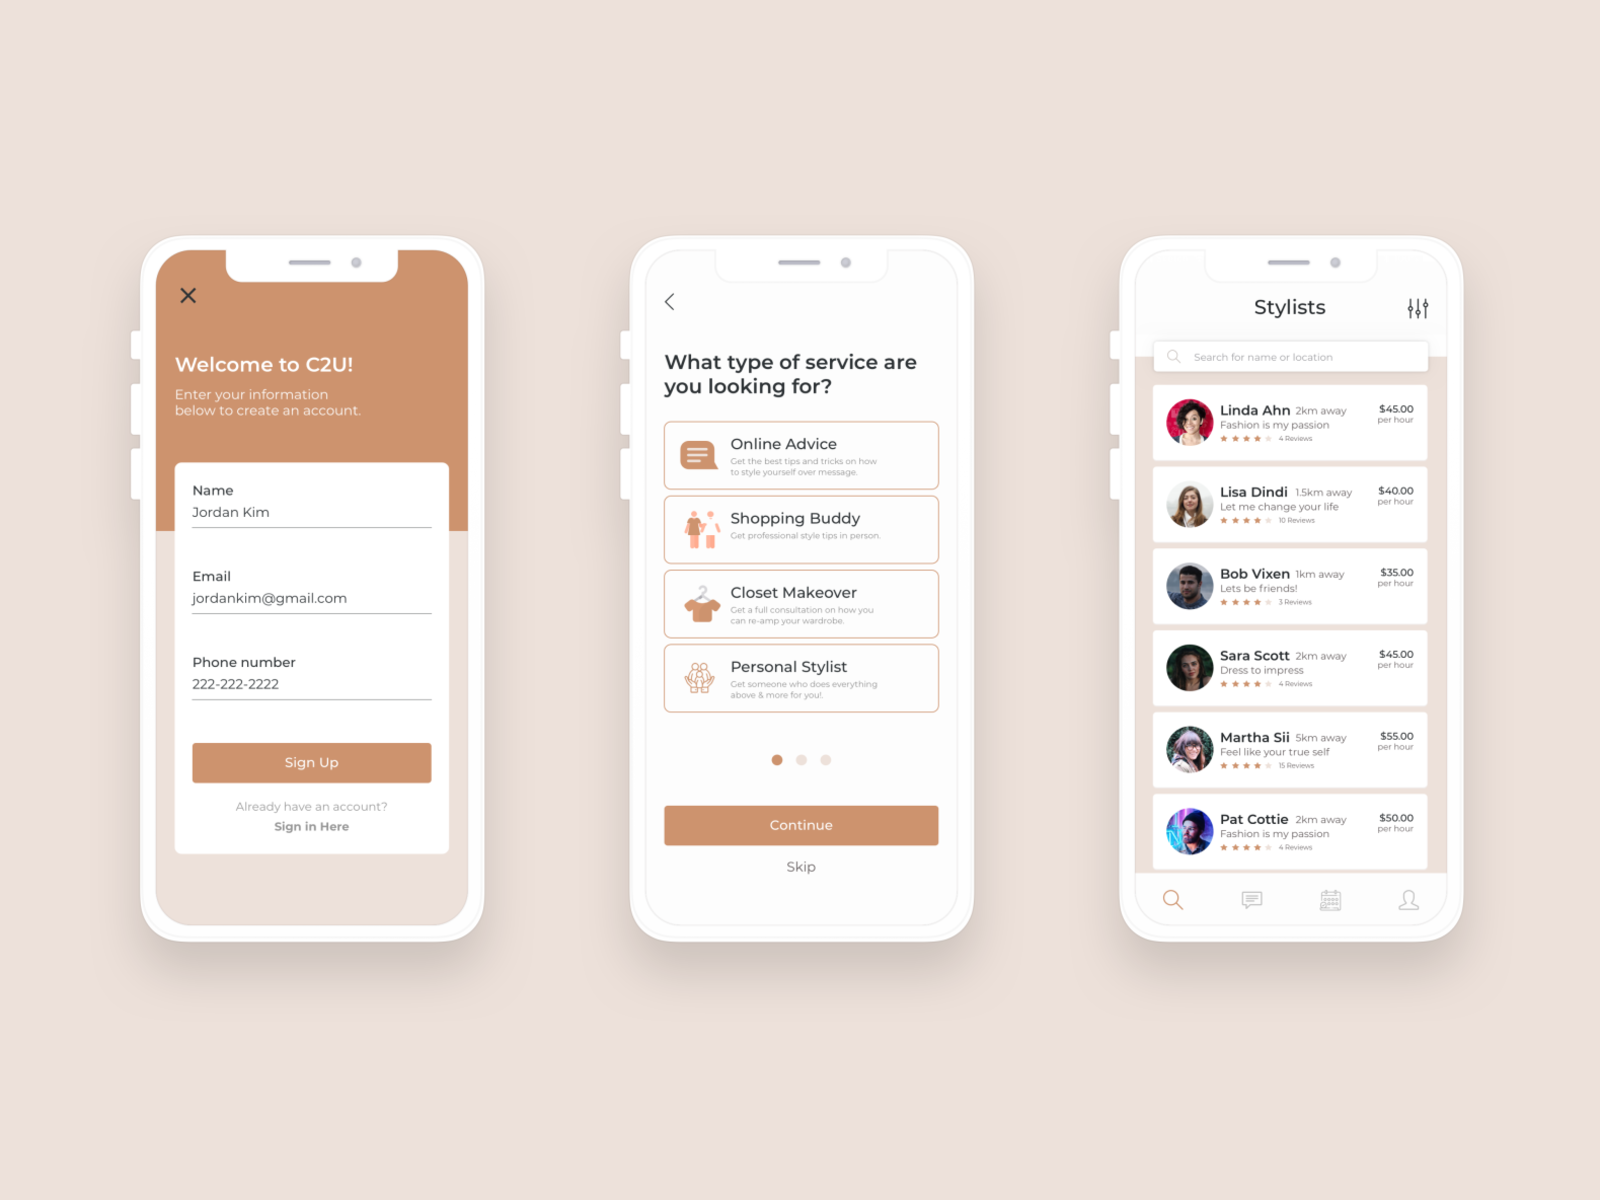 Mobile App Project Fashion Services Platform By Linda Ahn On Dribbble